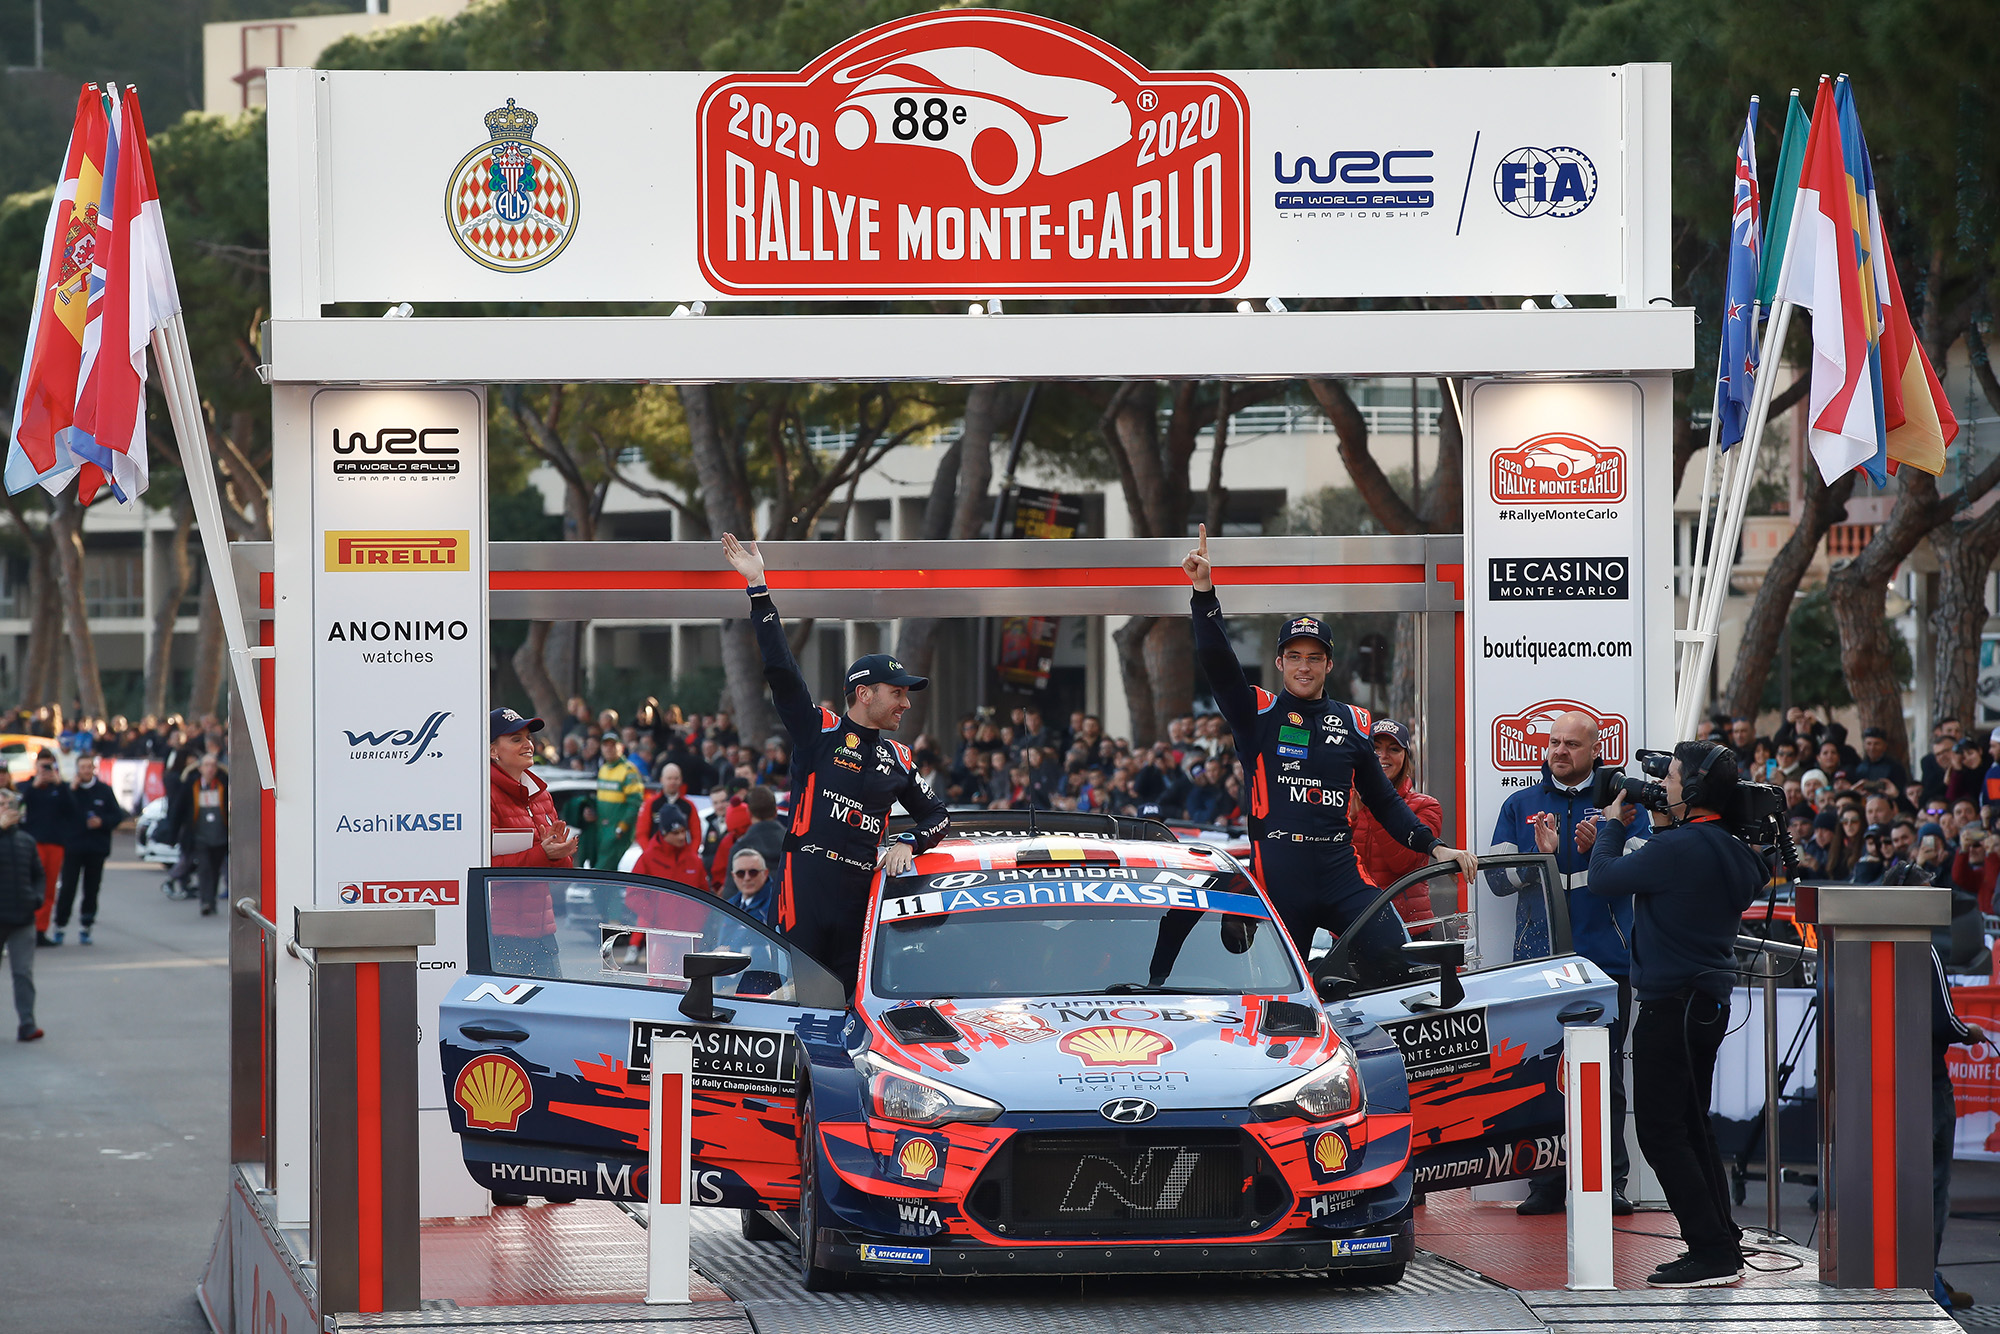 Thierry Neuville and co-driver Nicolas Gilsoul celebrate victory in the 2020 Monte Carlo Rally